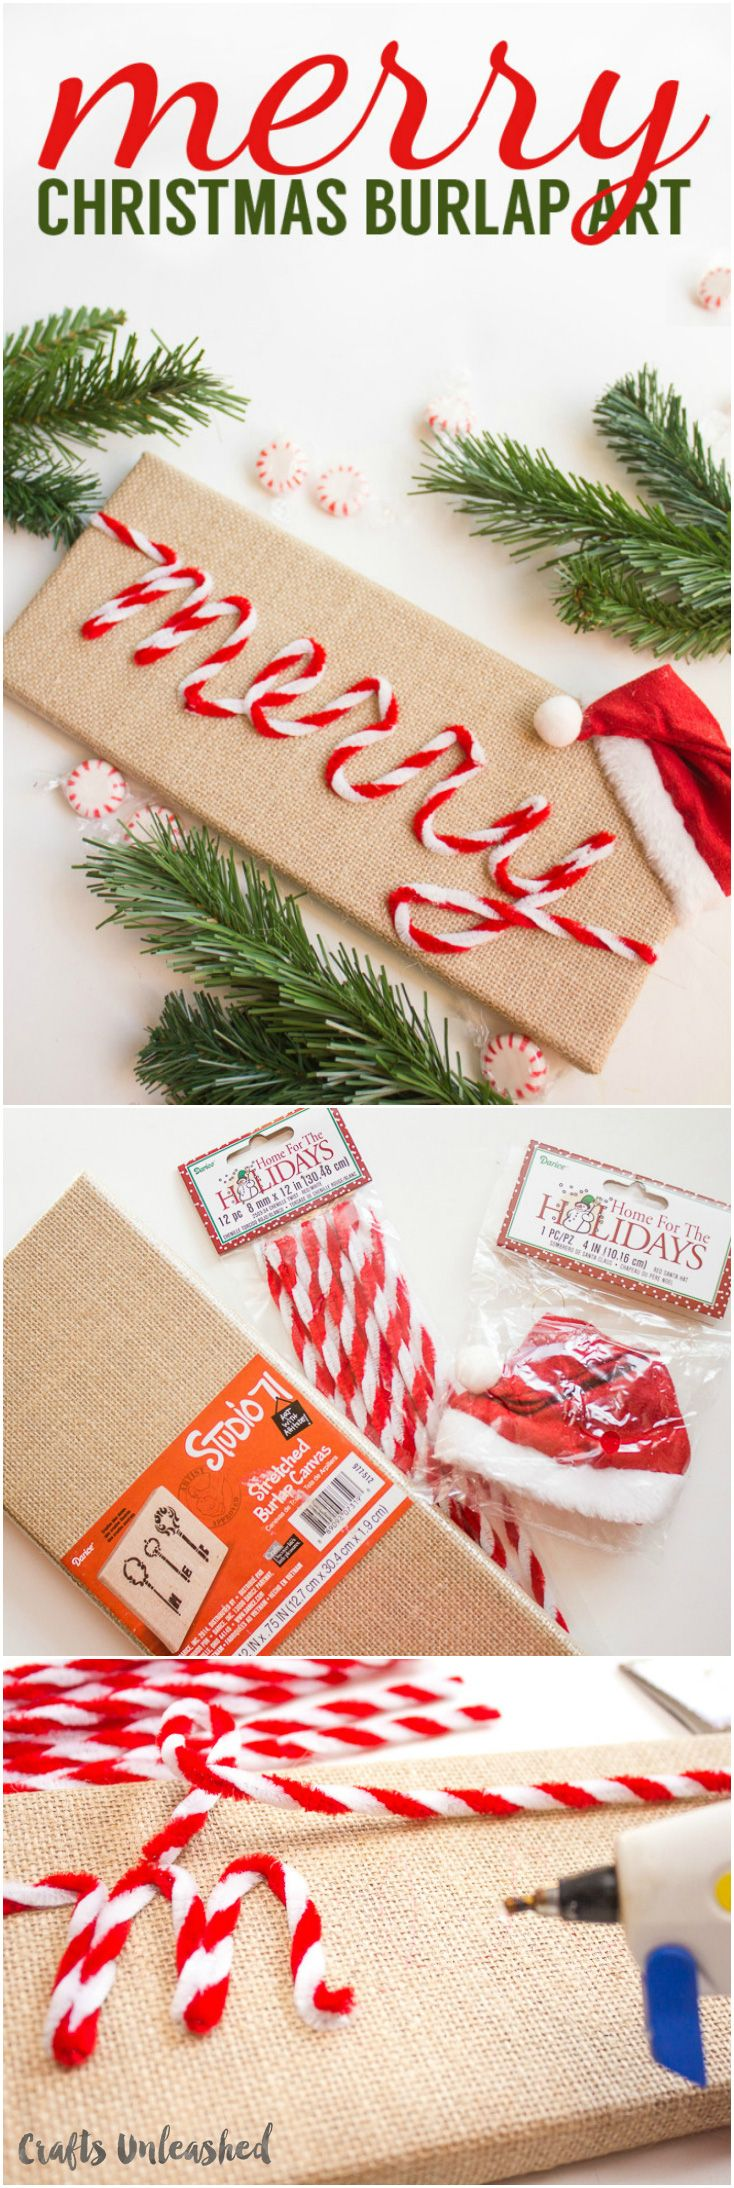 """Learn how to make your own vintage-inspired art like this """"Merry"""" burlap DIY Christmas art! It's simple and quick to create - we'll show you how!"""